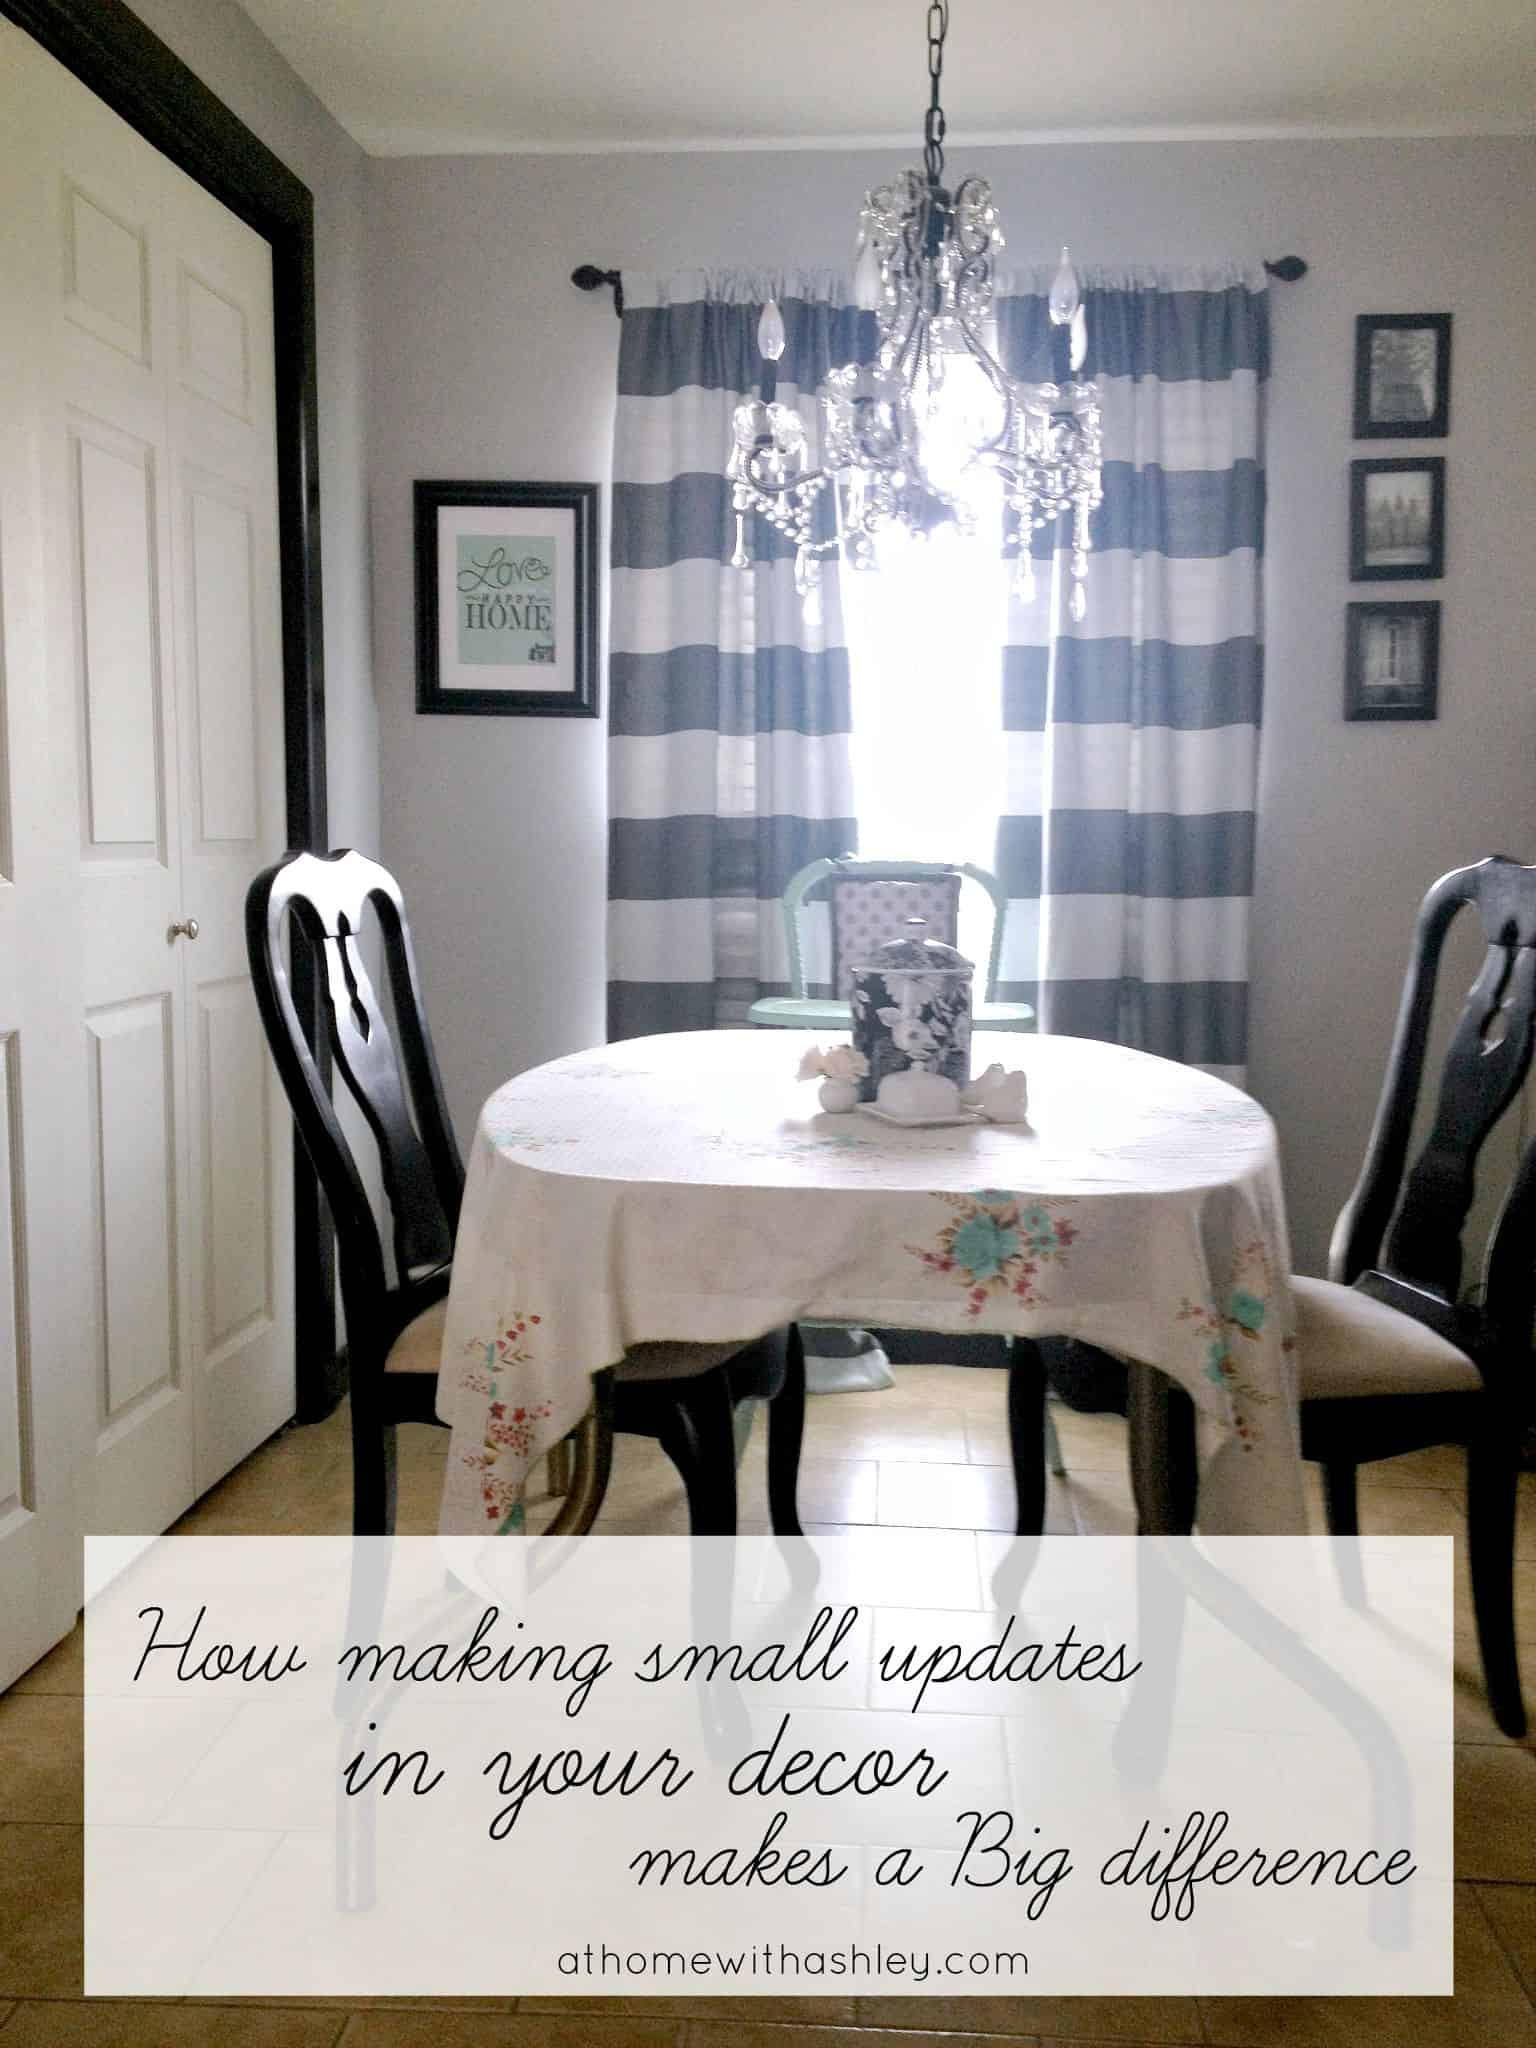 How Making Small Updates in you Decor makes a Big Difference